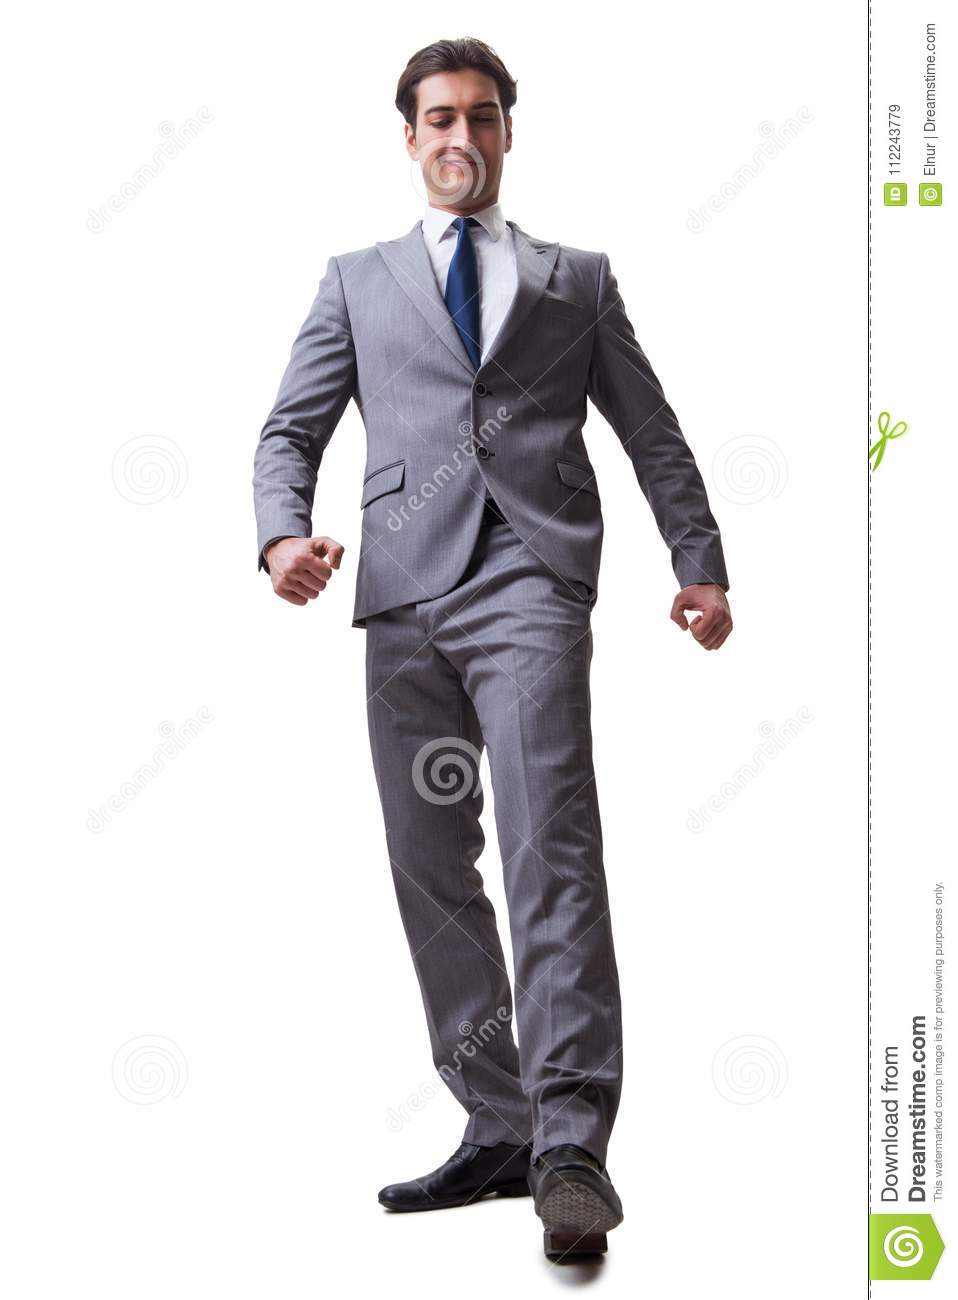 The businessman isolated on the white background